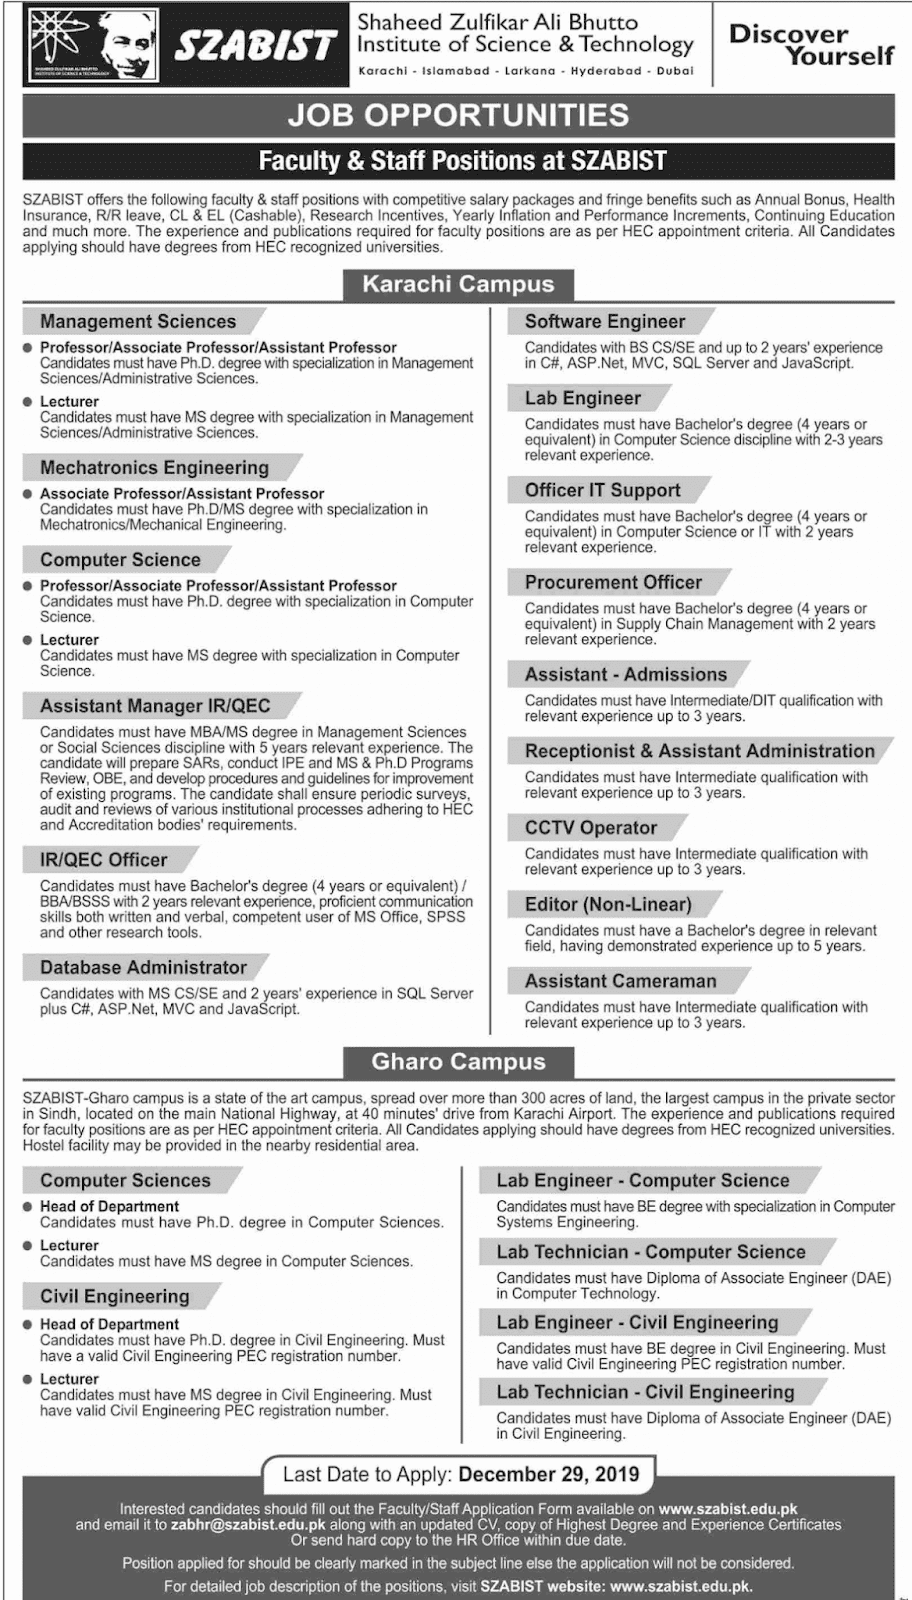 Jobs in Shaheed Zulfikar Ali Bhutto Institute of Science and Technology 2019 December 23